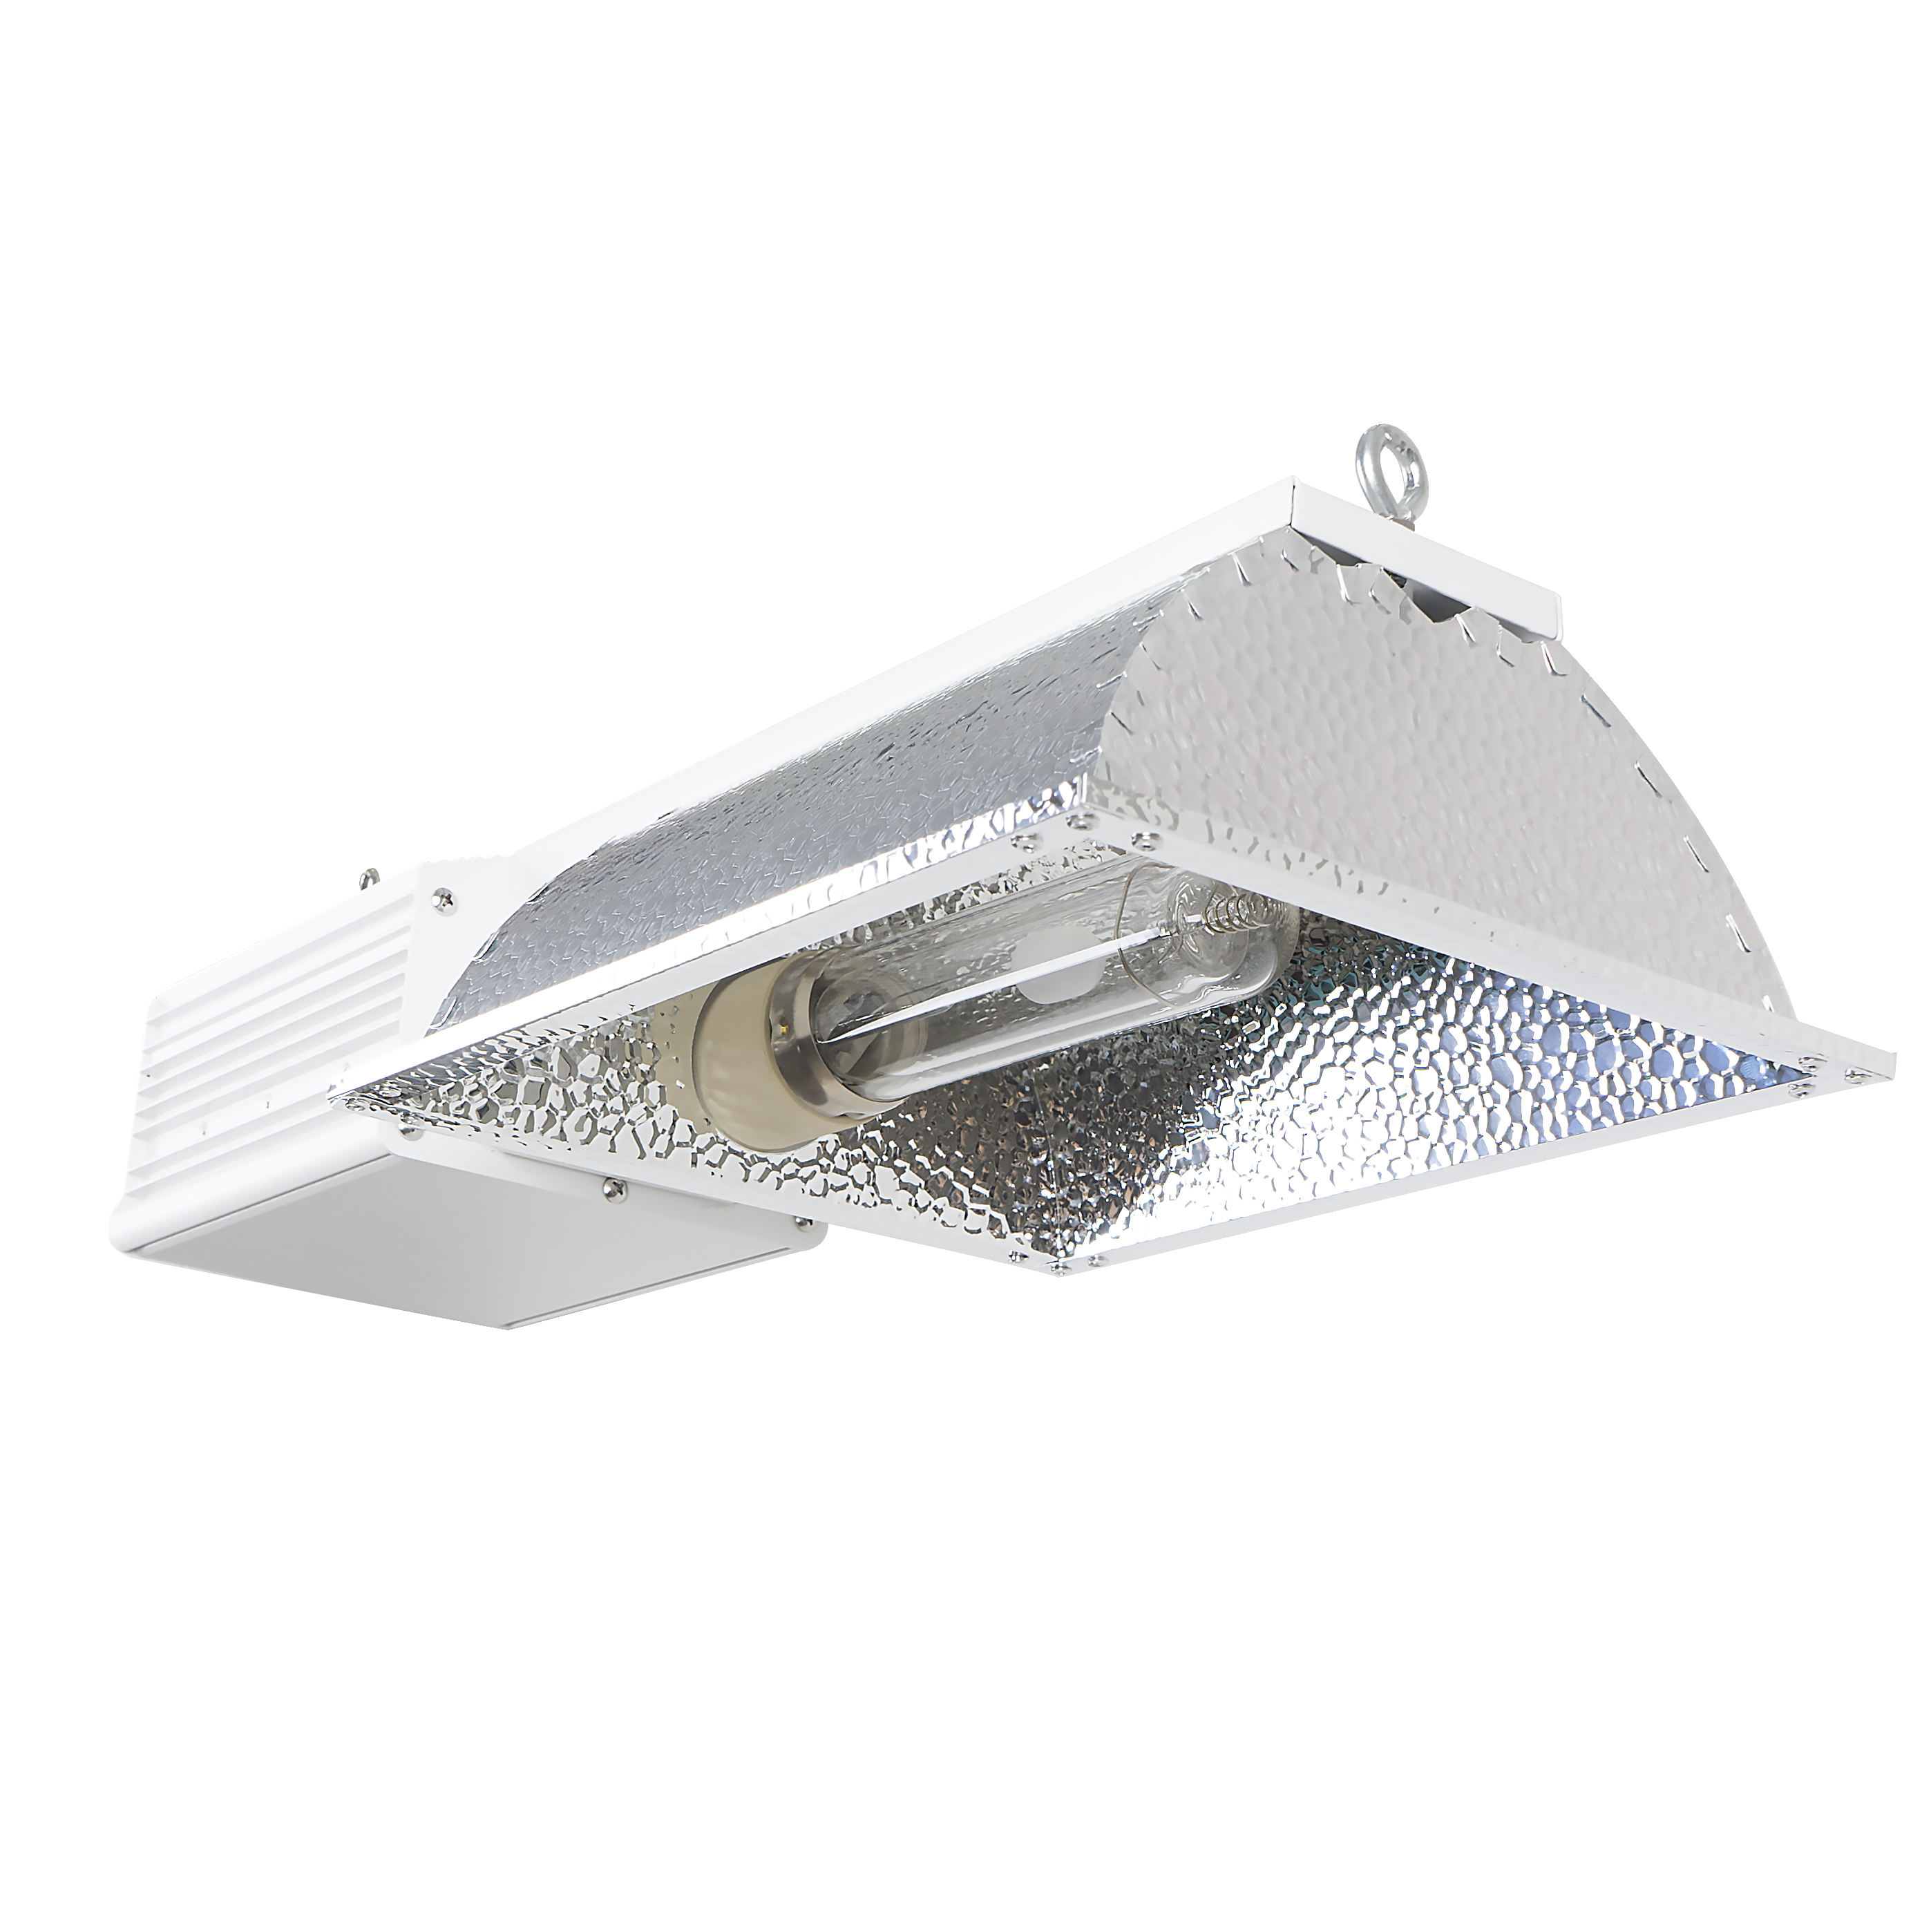 Indoor CMH Ceramic Metal Halide cmh grow light reflector ballast 315w fixture Fixture Kit